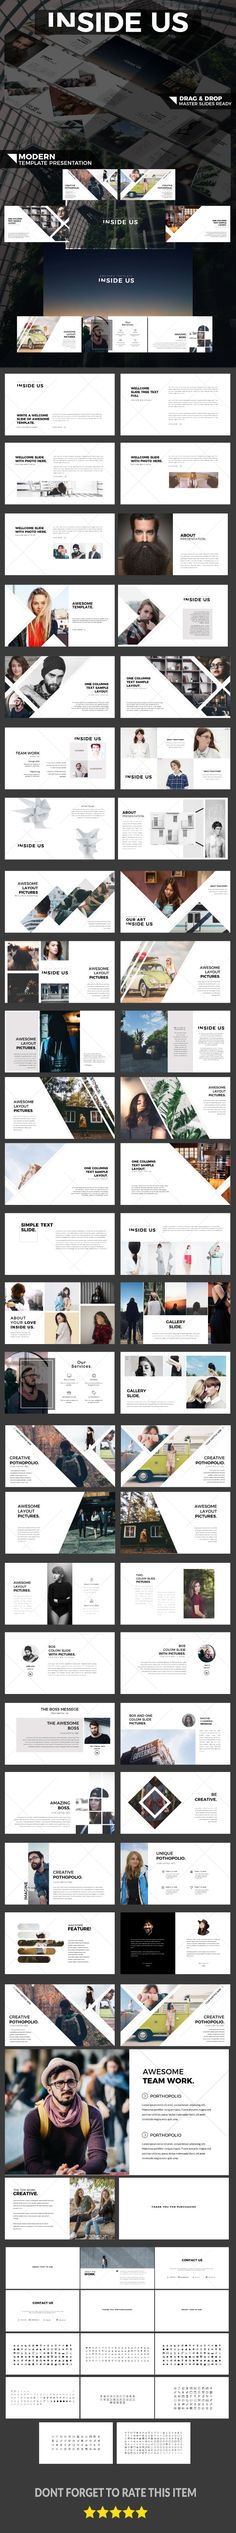 Gallia creative powerpoint template creative powerpoint data inside us modern presentation toneelgroepblik Image collections